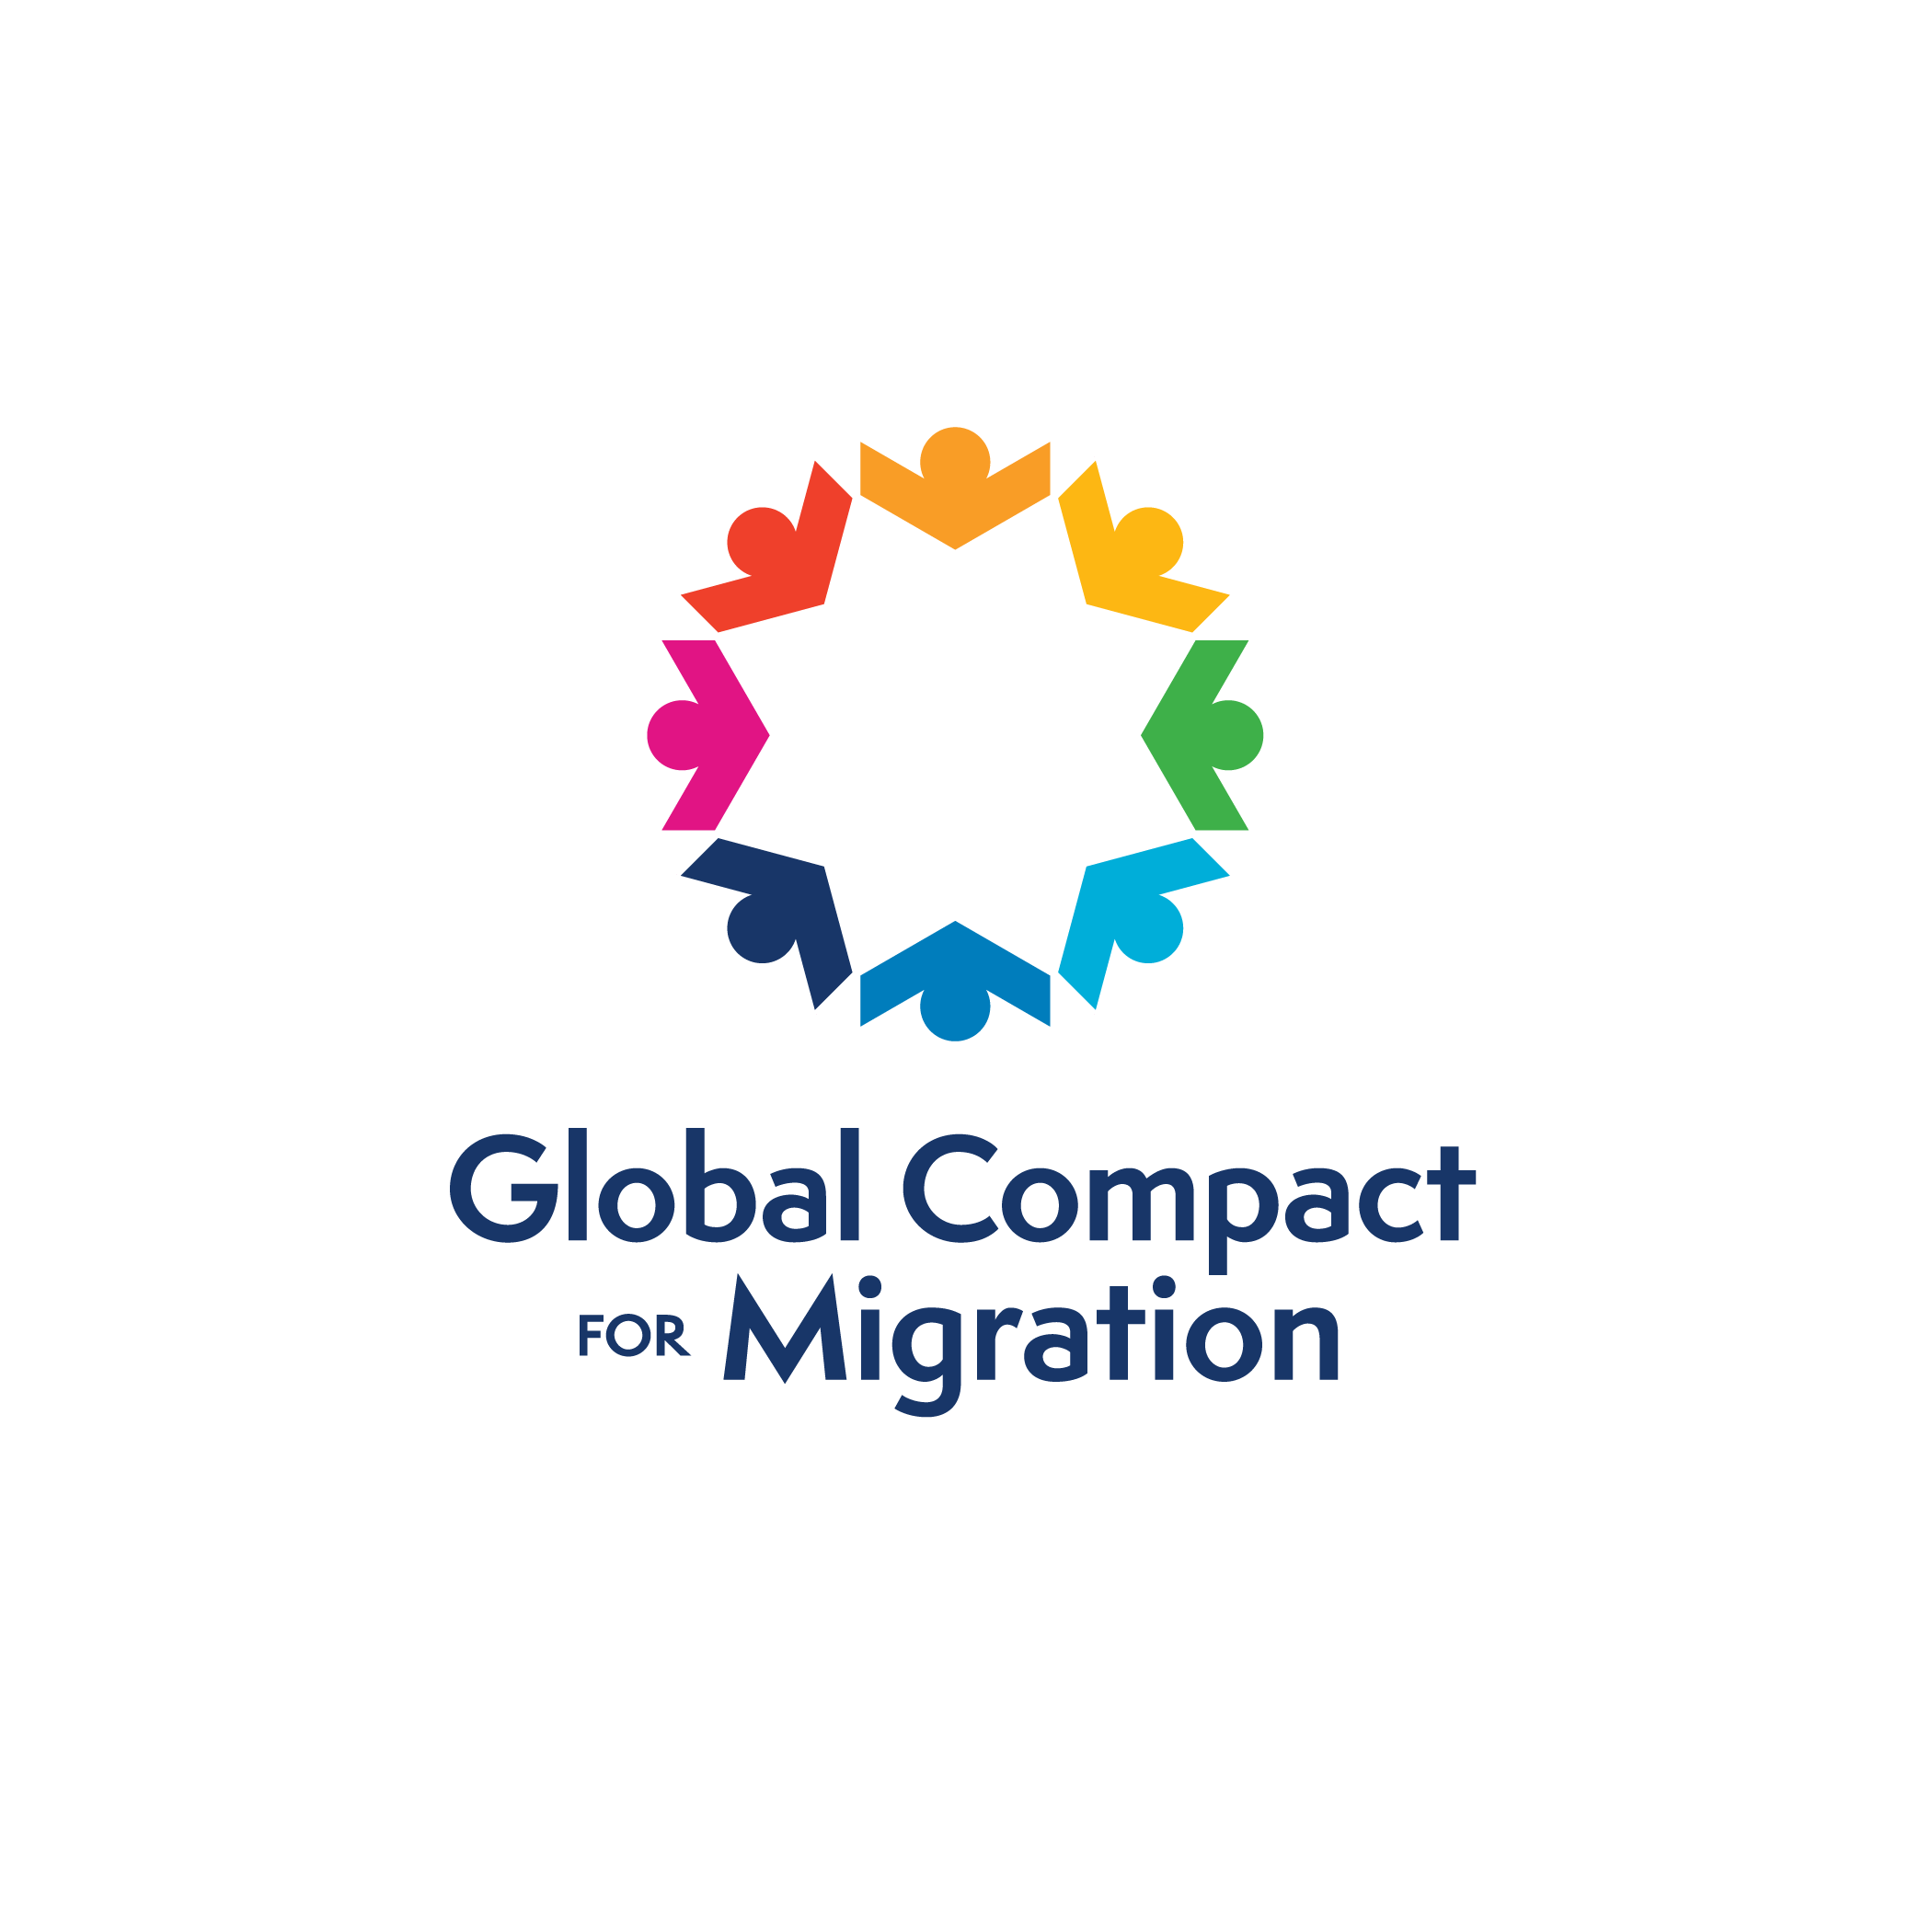 Logo migration compact.png